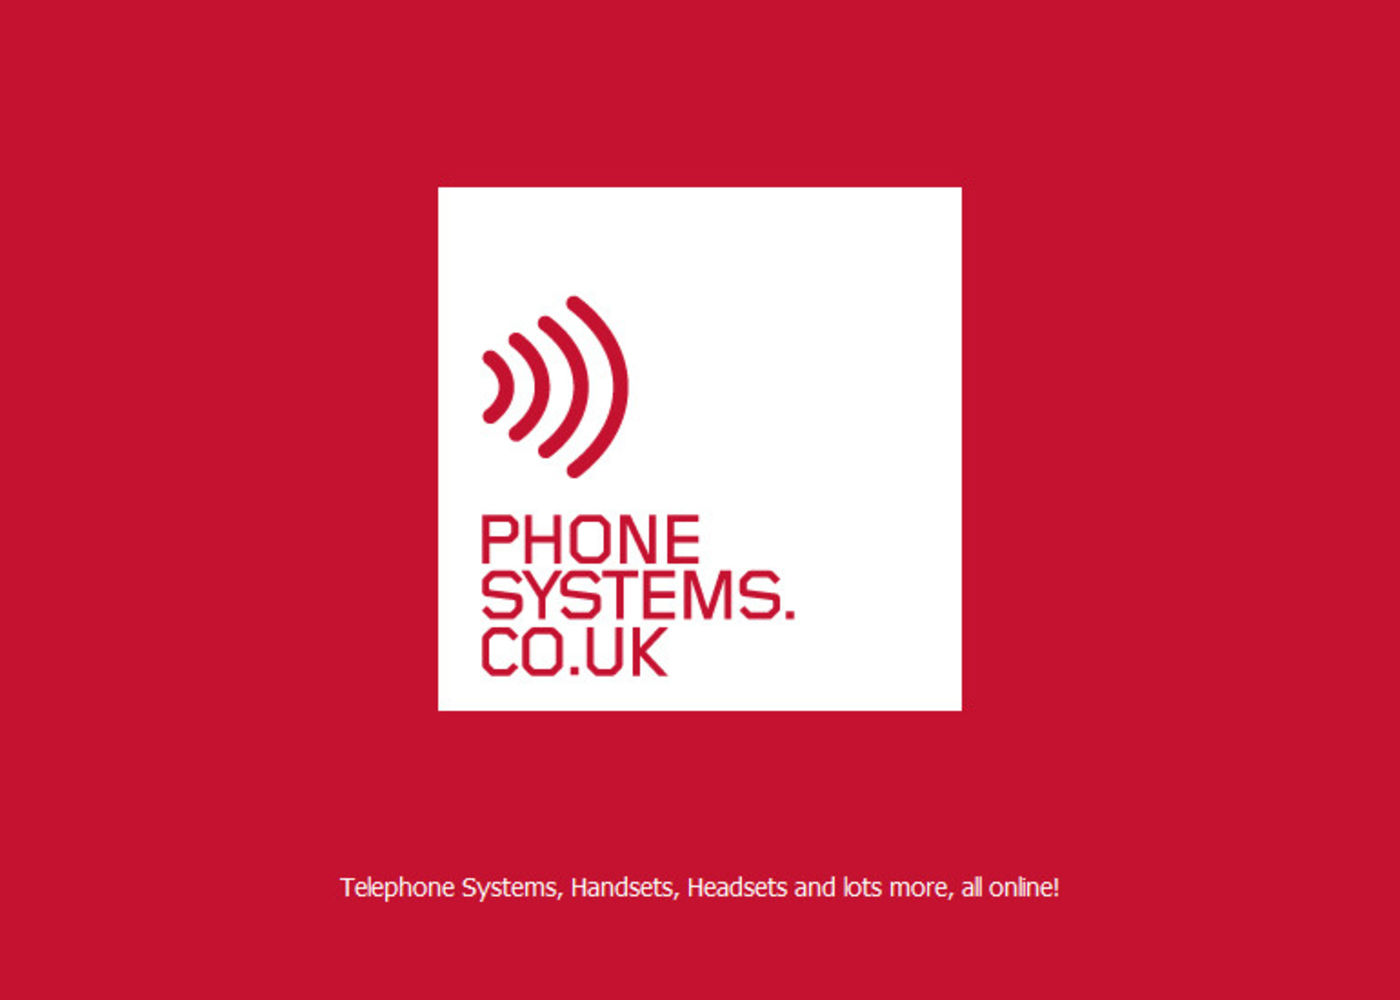 Phonesystems.co.uk Welcome